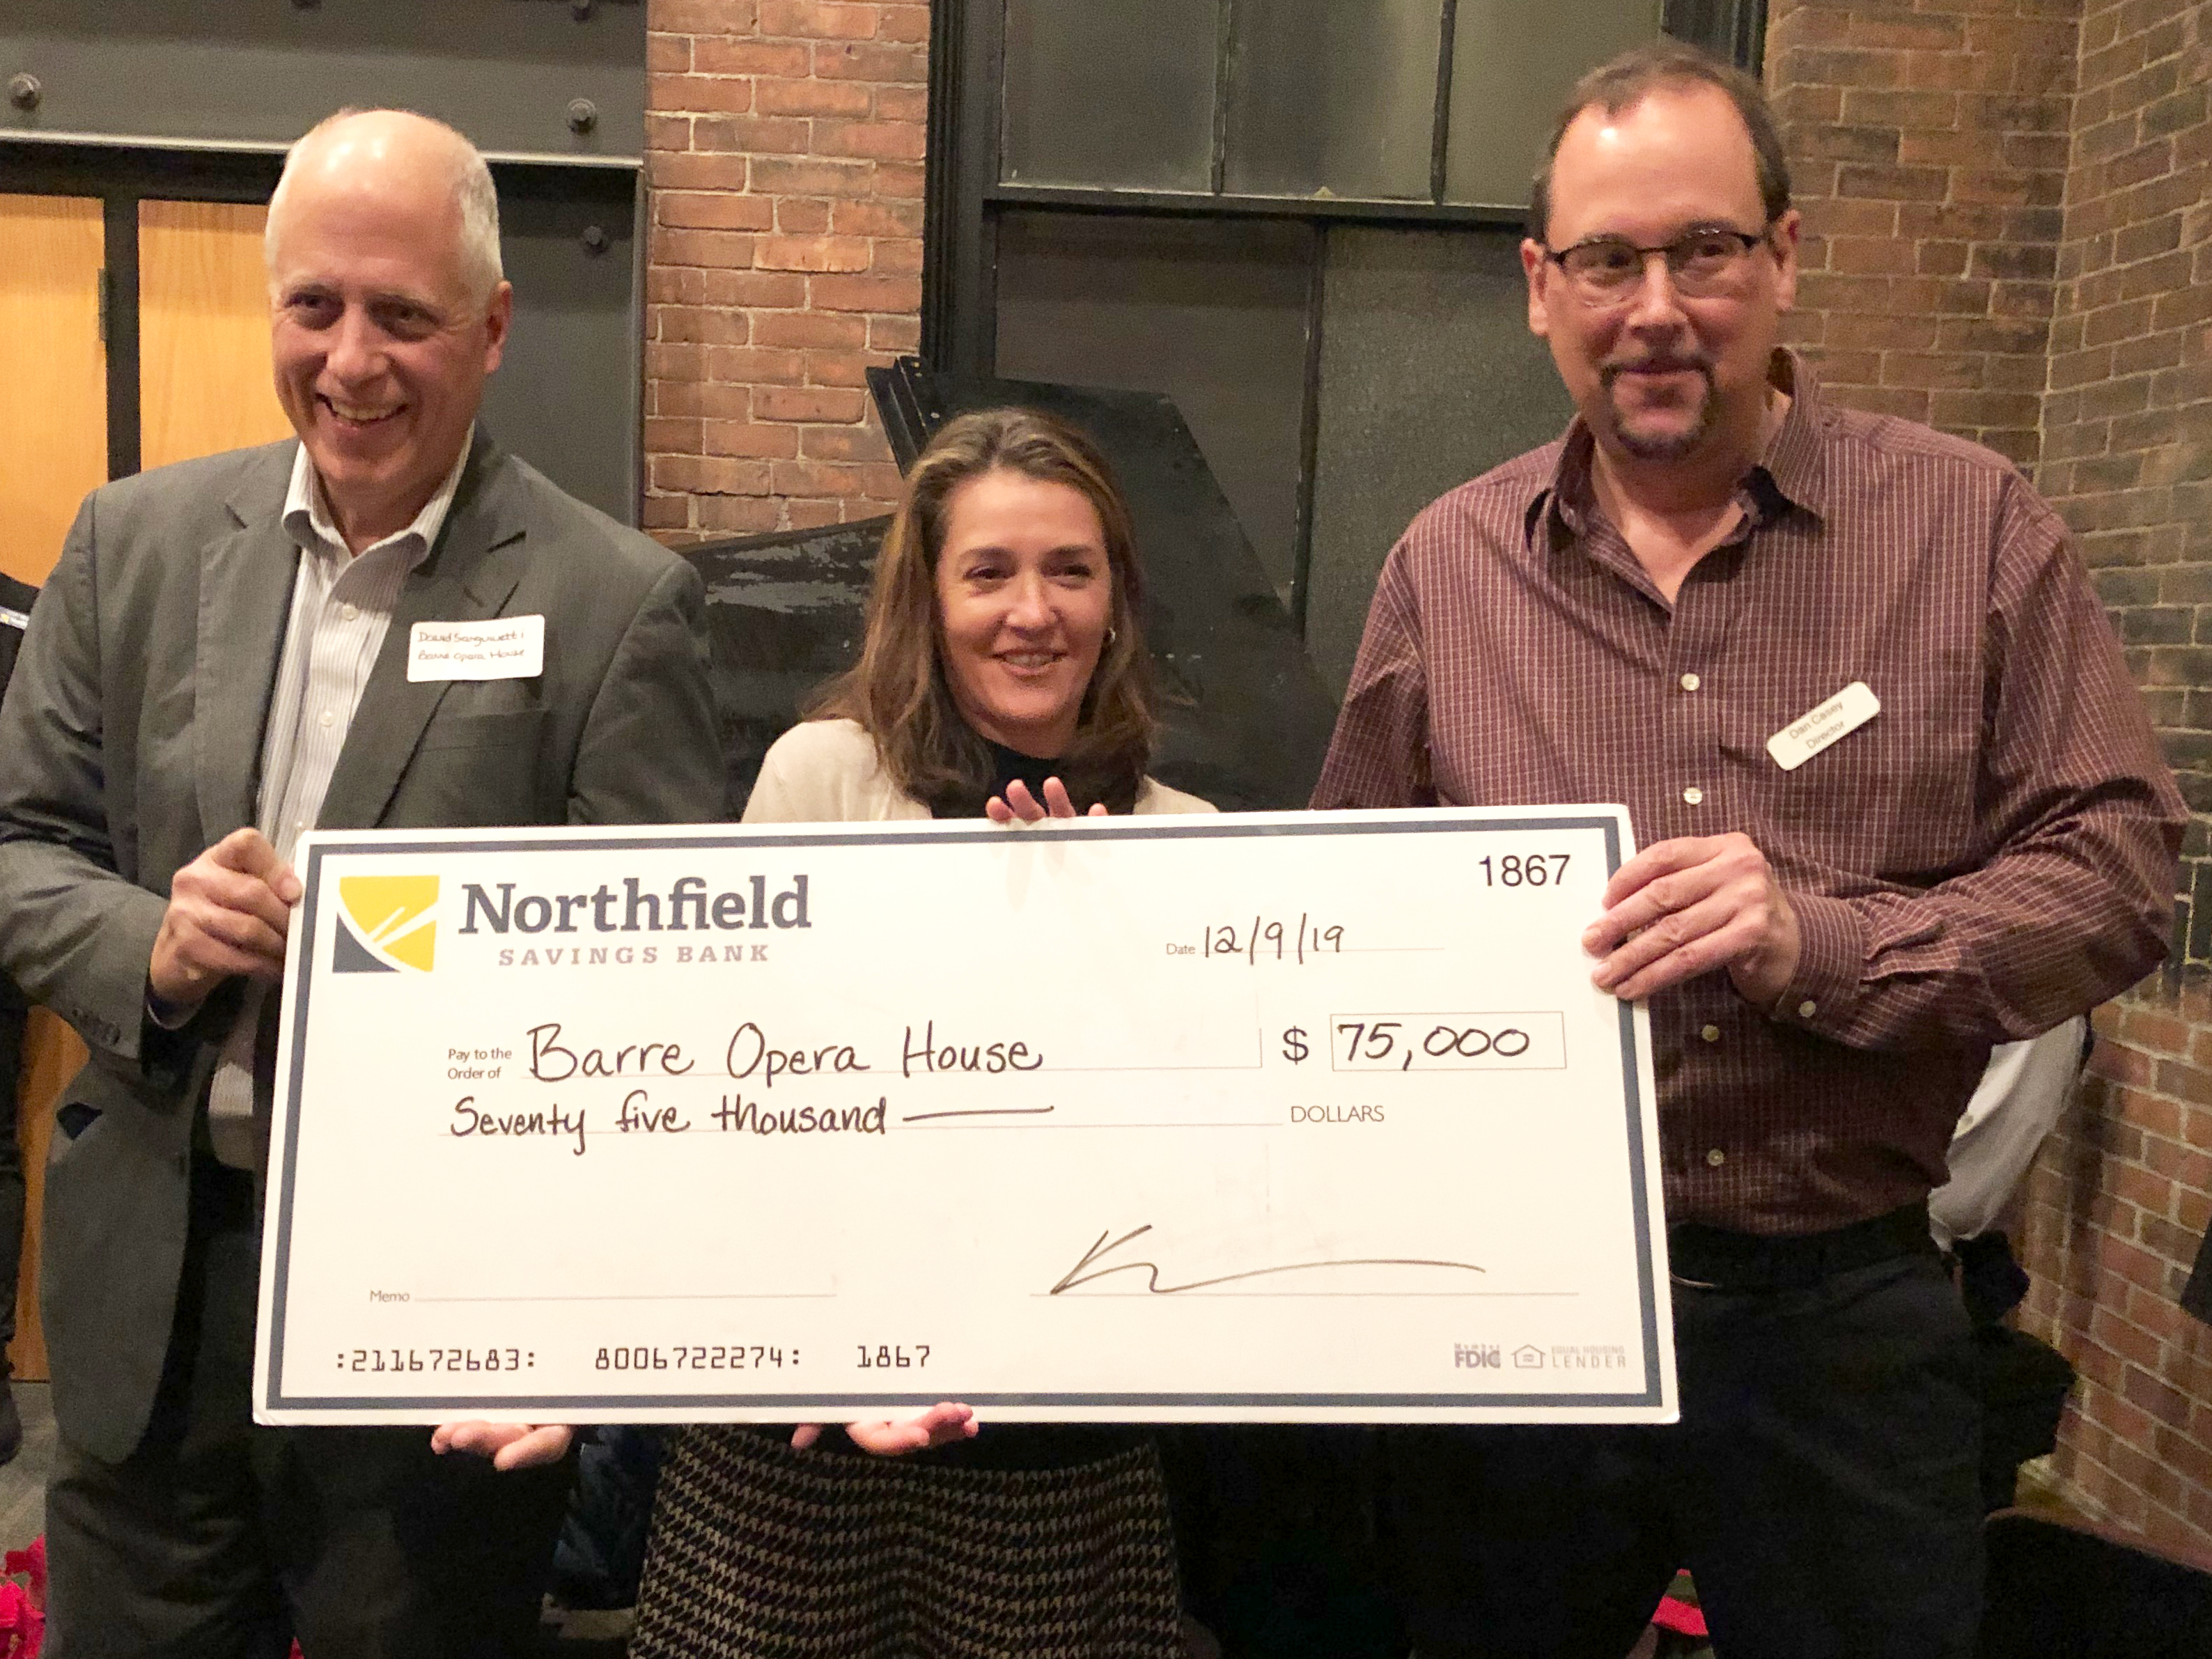 NSB supports Barre Opera House with $75,000 gift